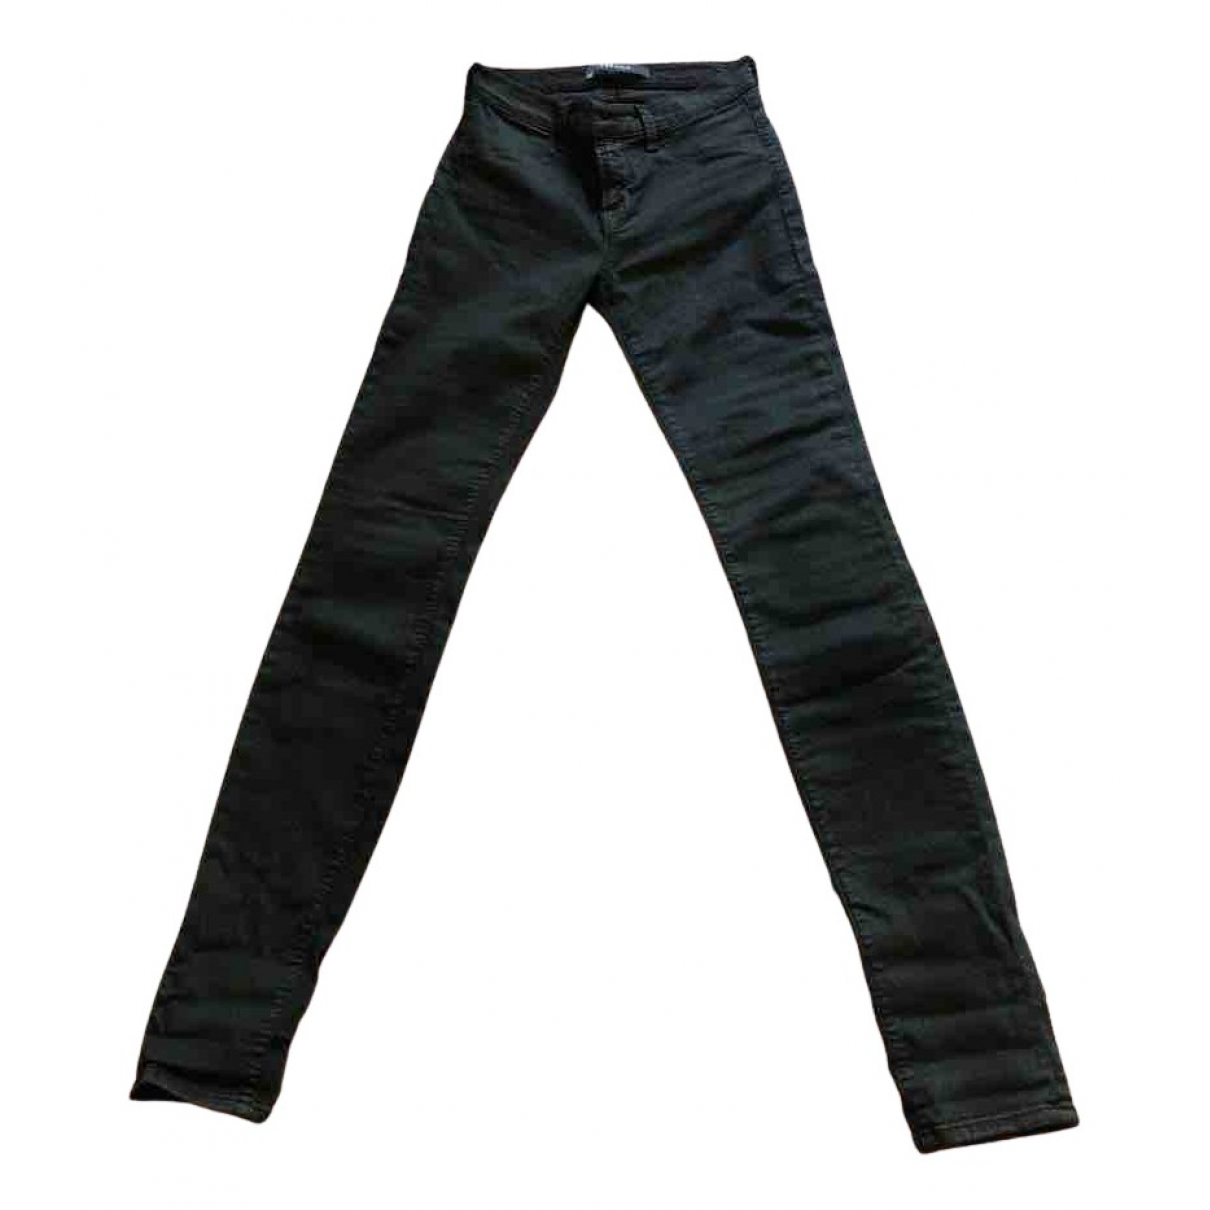 J Brand N Green Cotton - elasthane Jeans for Women 25 US